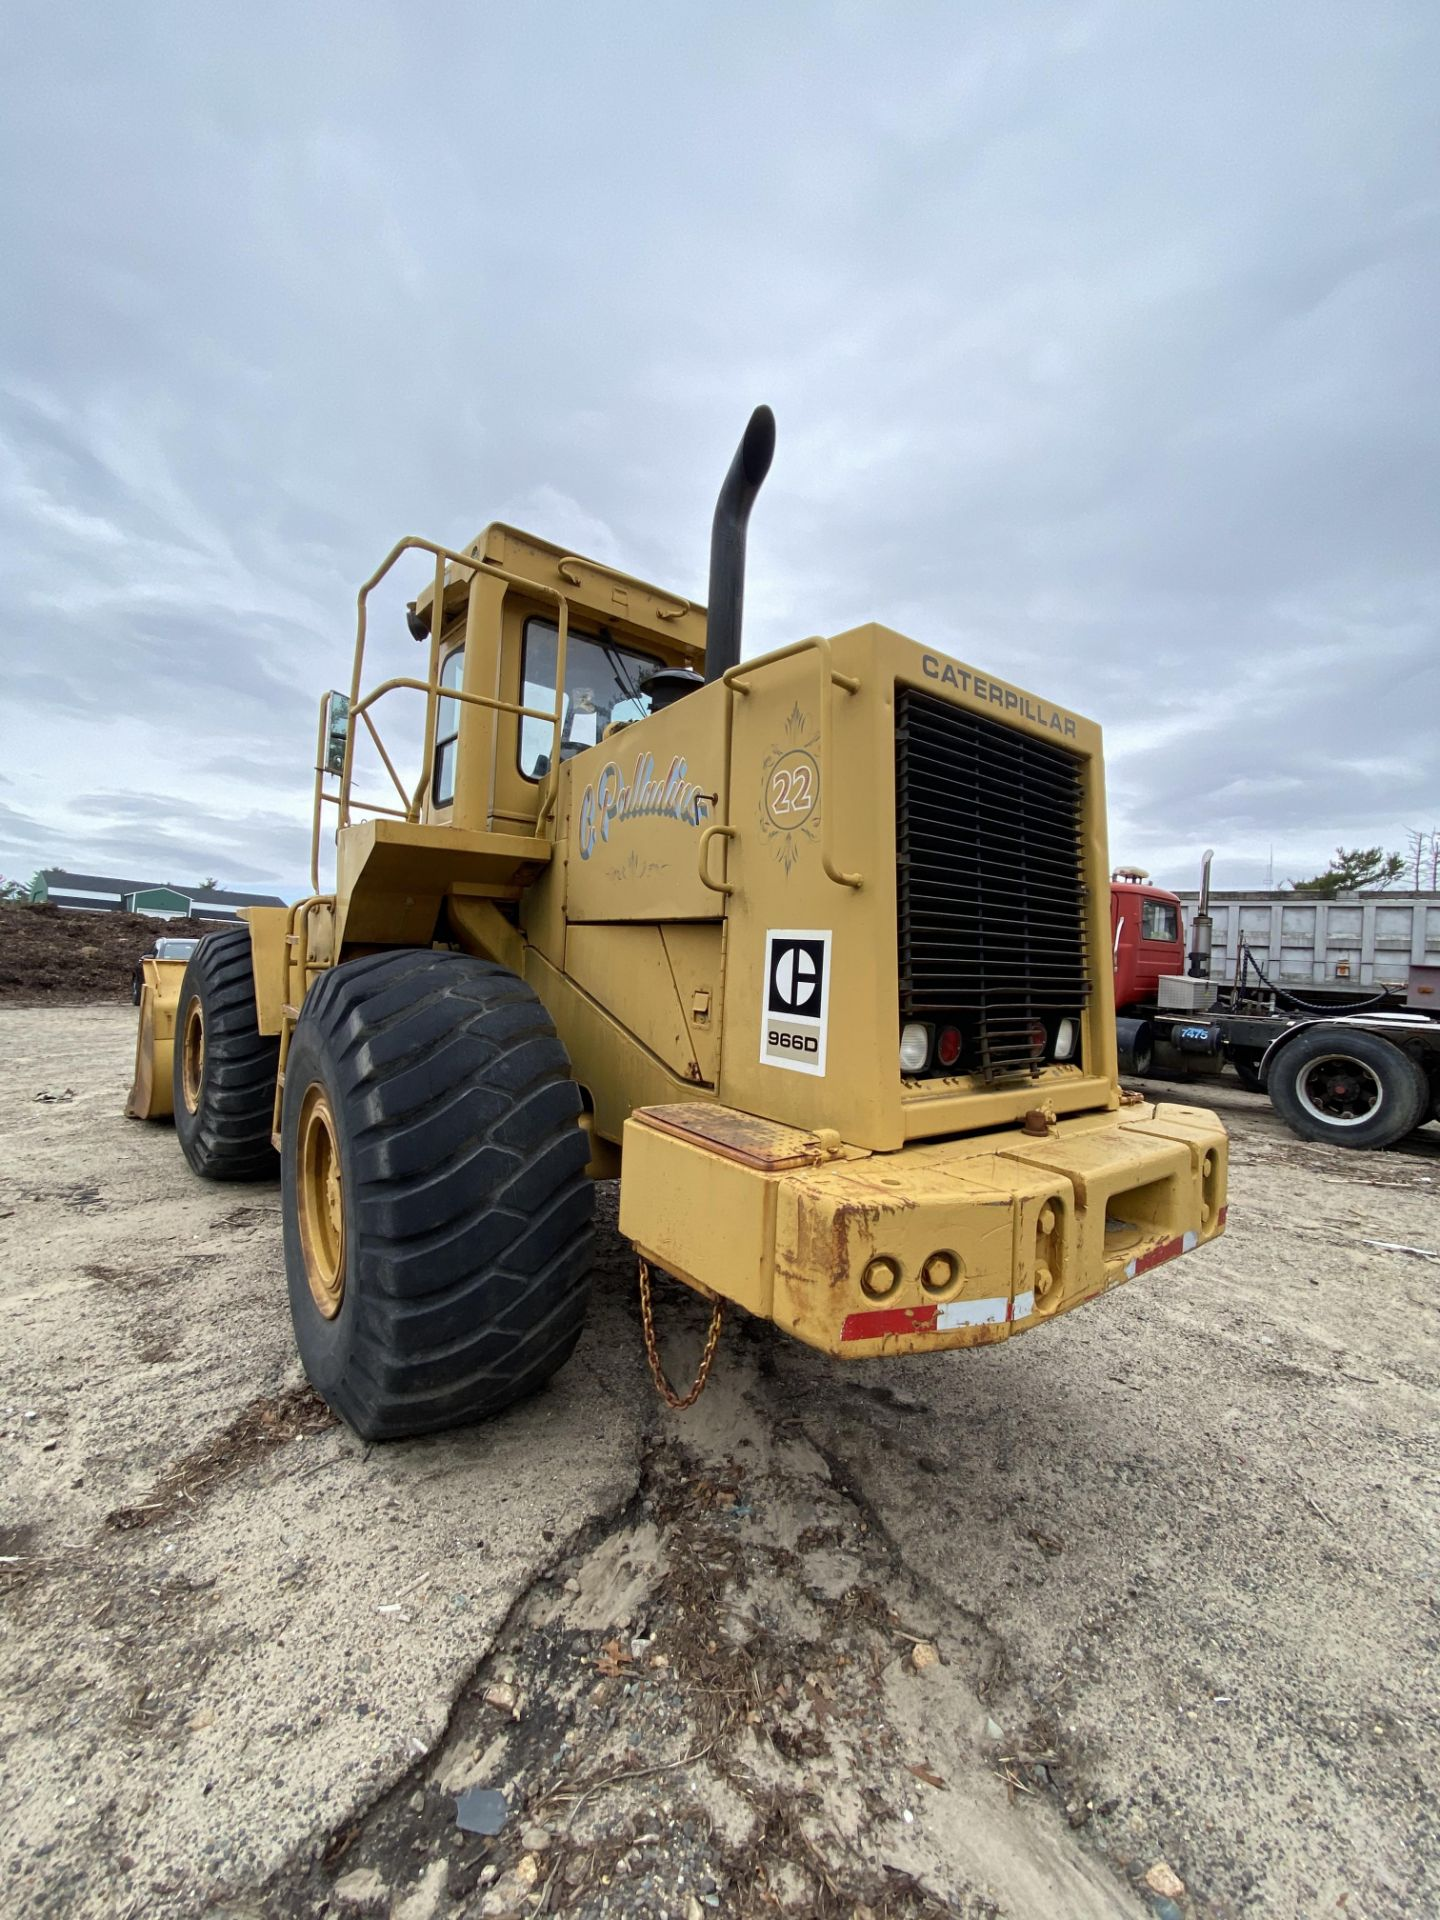 1980 Caterpillar 966D Wheel Loader s/n 99Y02108, Meter Reads 4,664 Hours, Have Title - Image 9 of 23